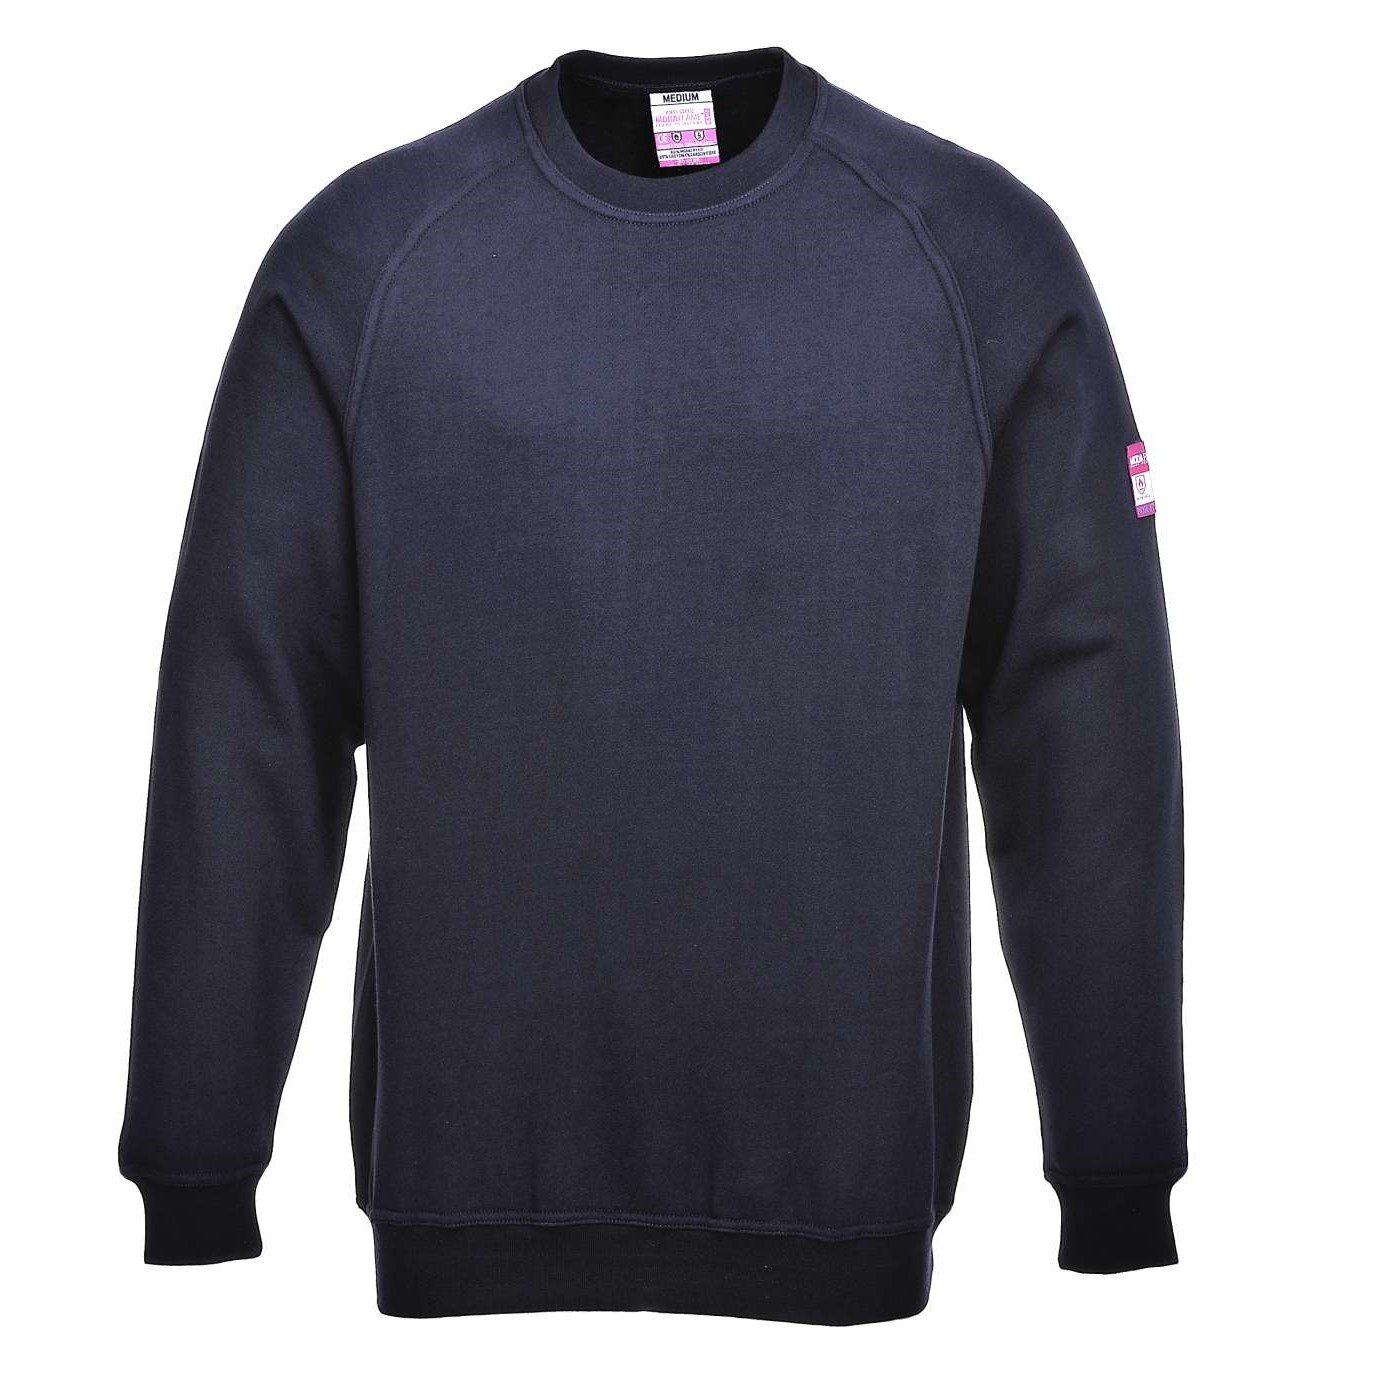 98a5c6ab Portwest ModaFlame Flame Resistant Anti-Static Sweatshirt FR12